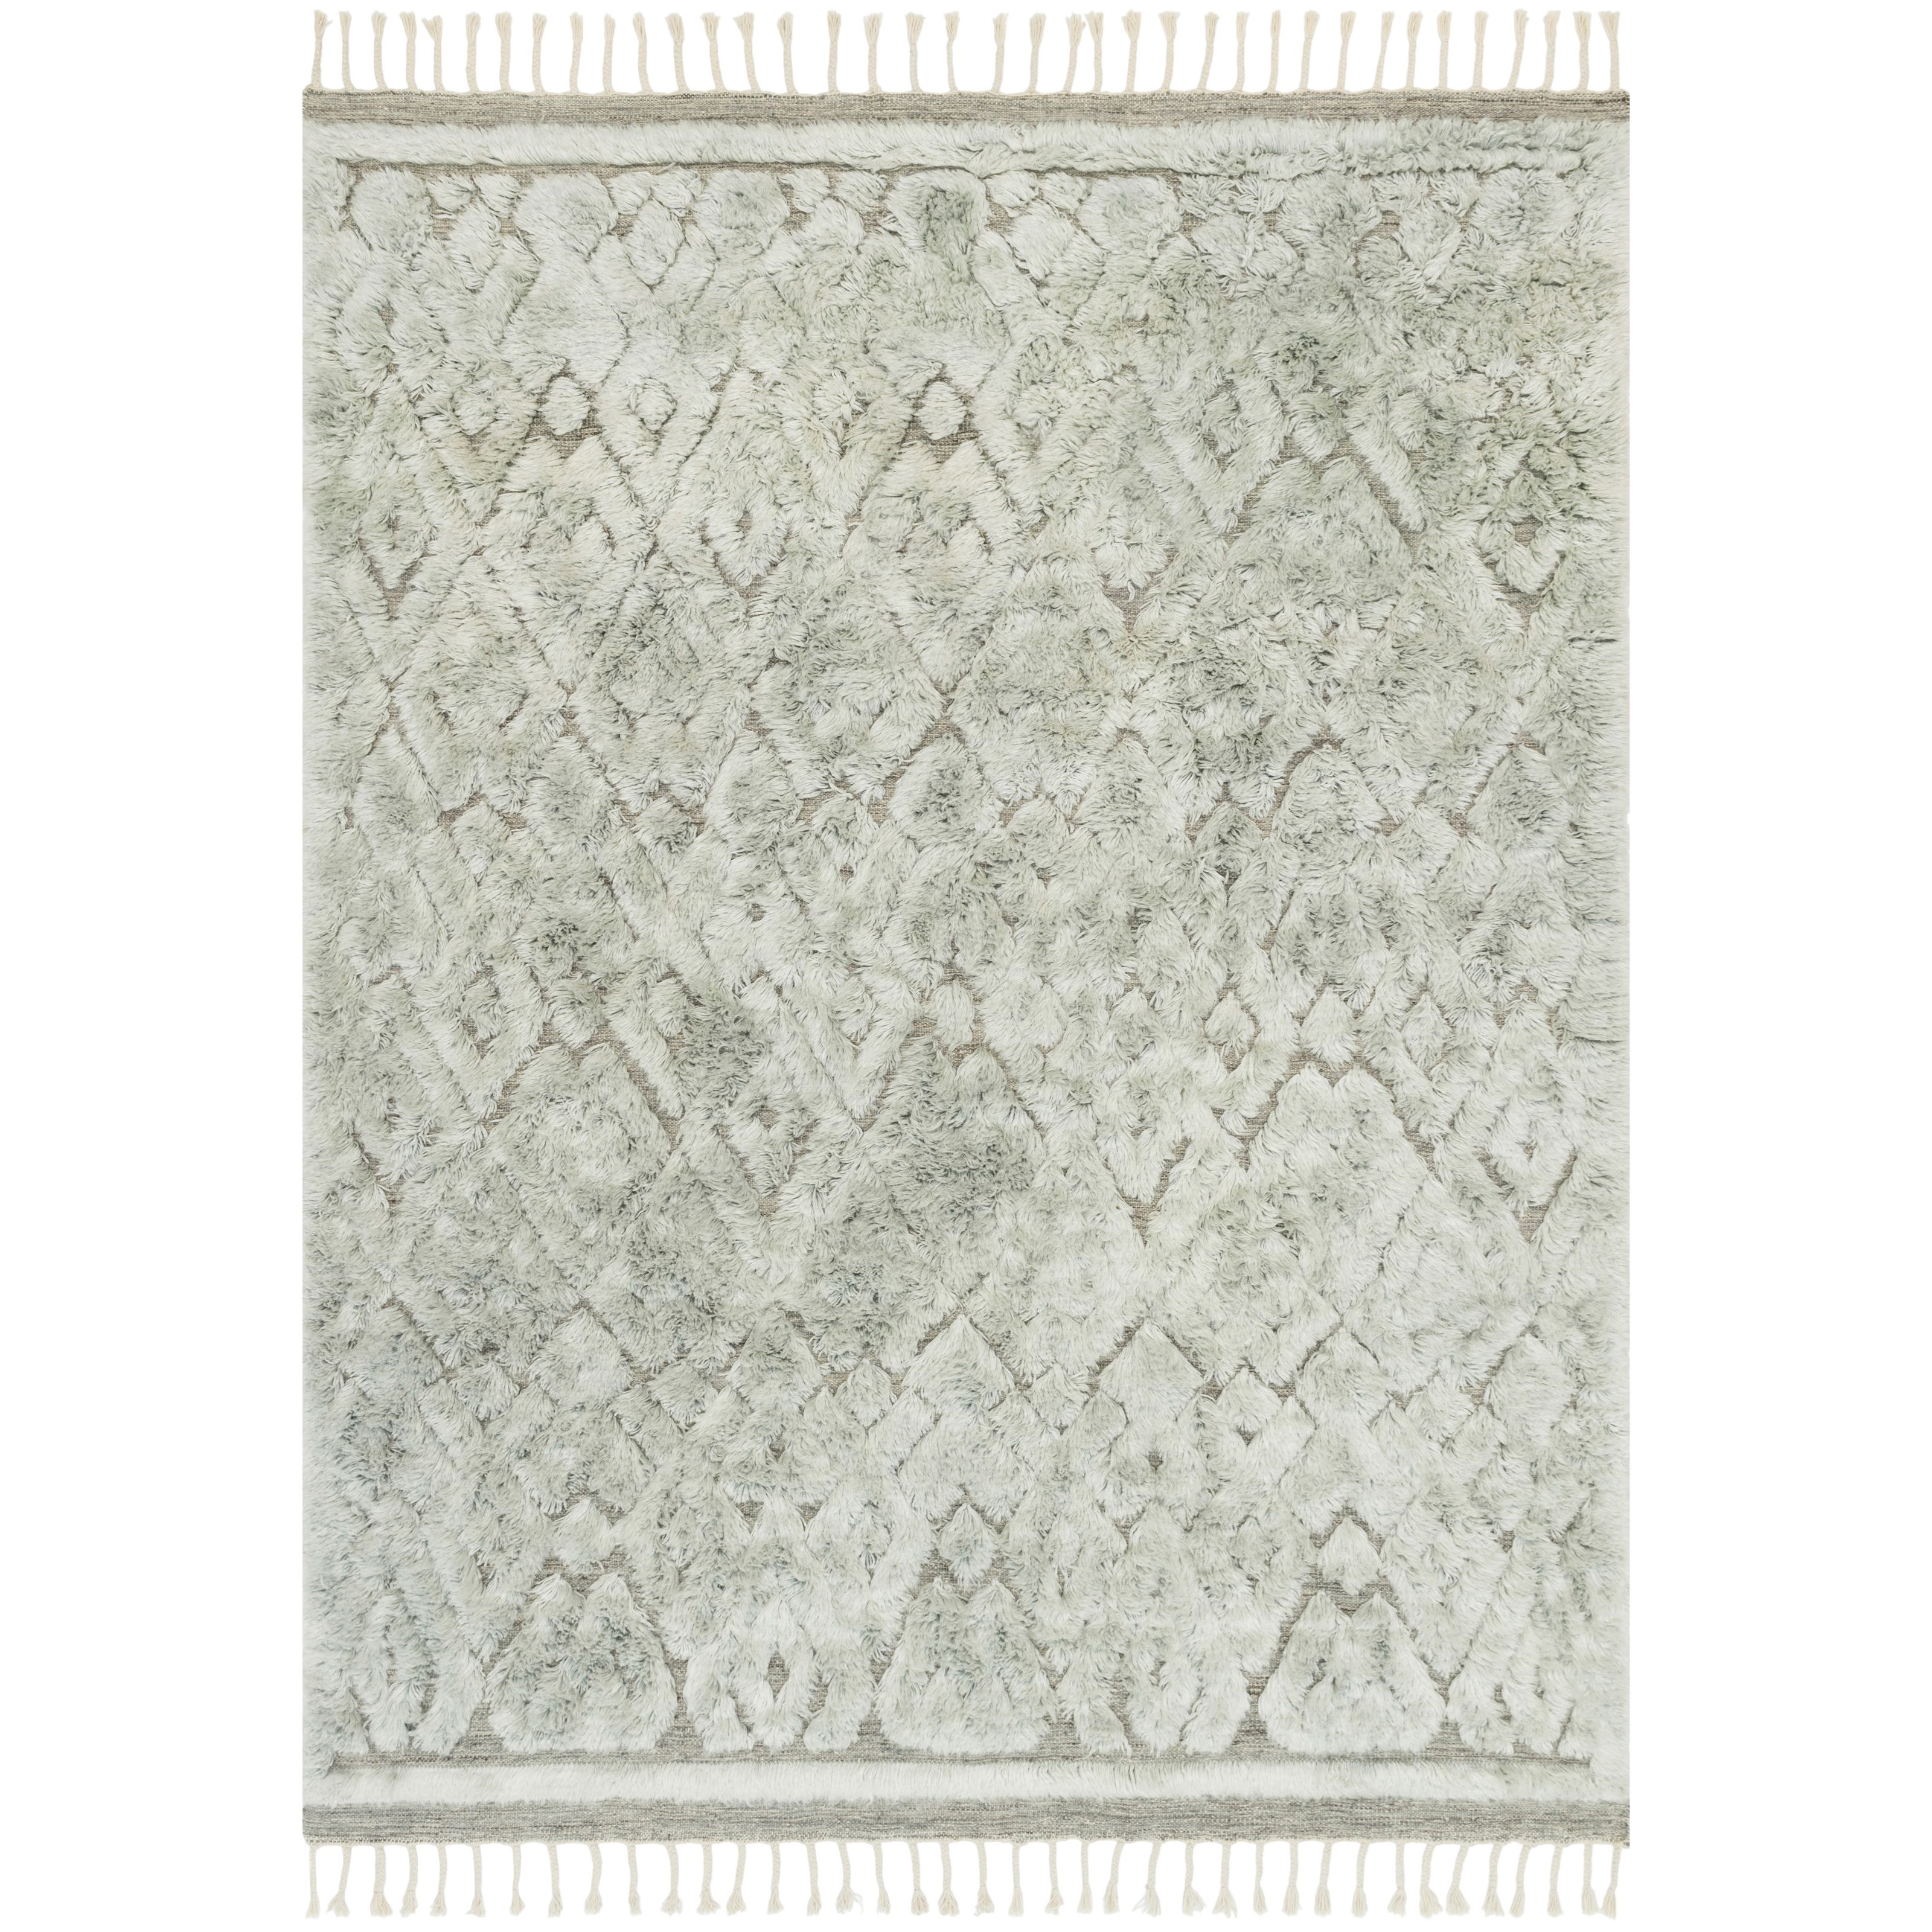 """Hygge 7'9"""" x 9'9"""" Grey / Mist Rug by Loloi Rugs at Virginia Furniture Market"""